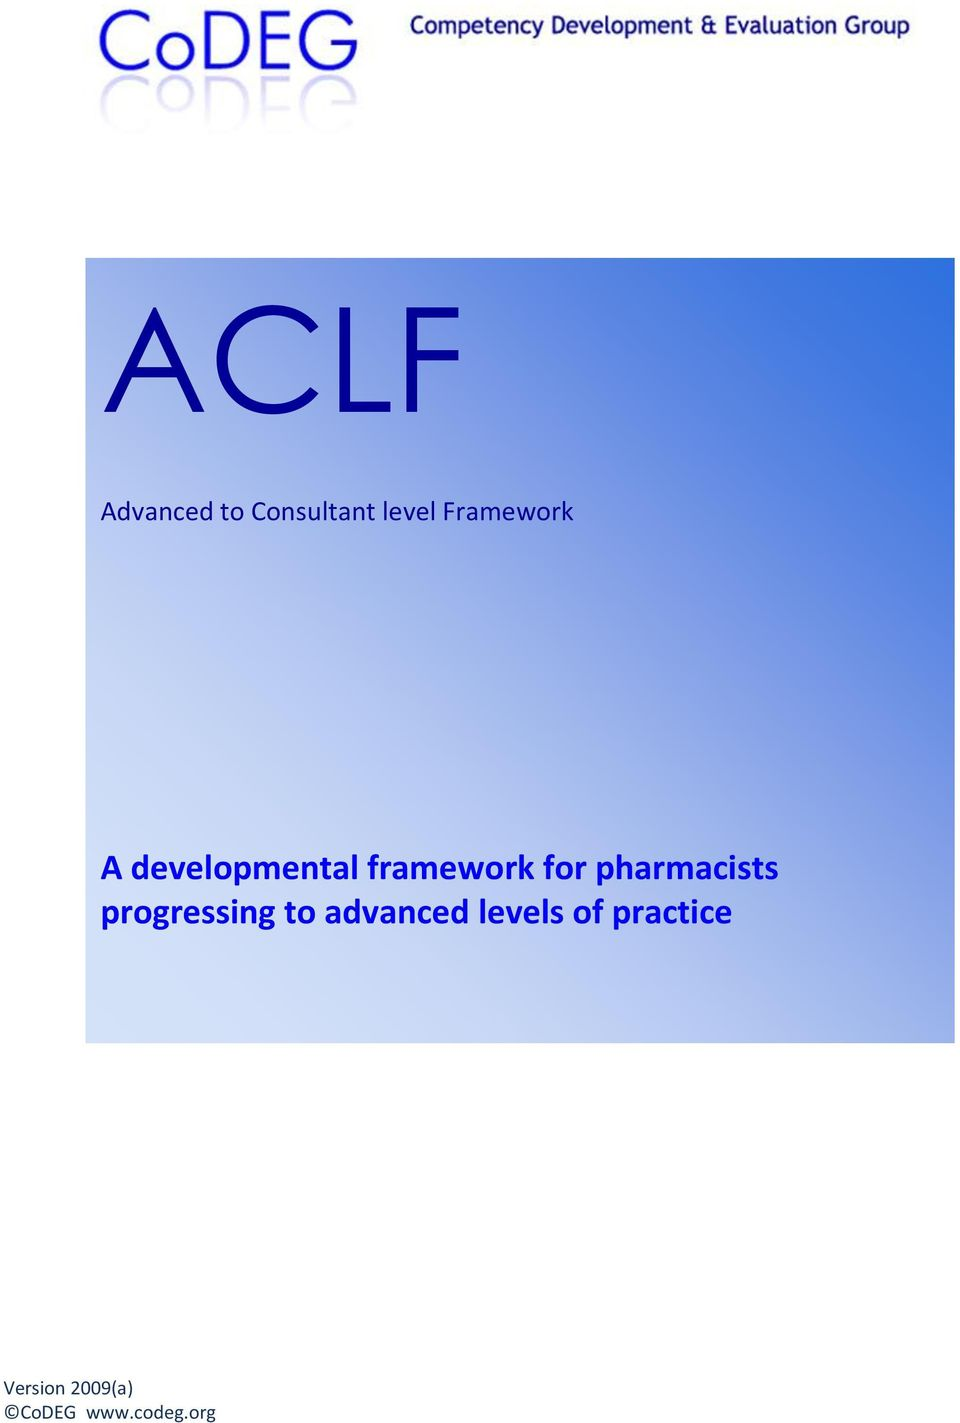 pharmacists progressing to advanced